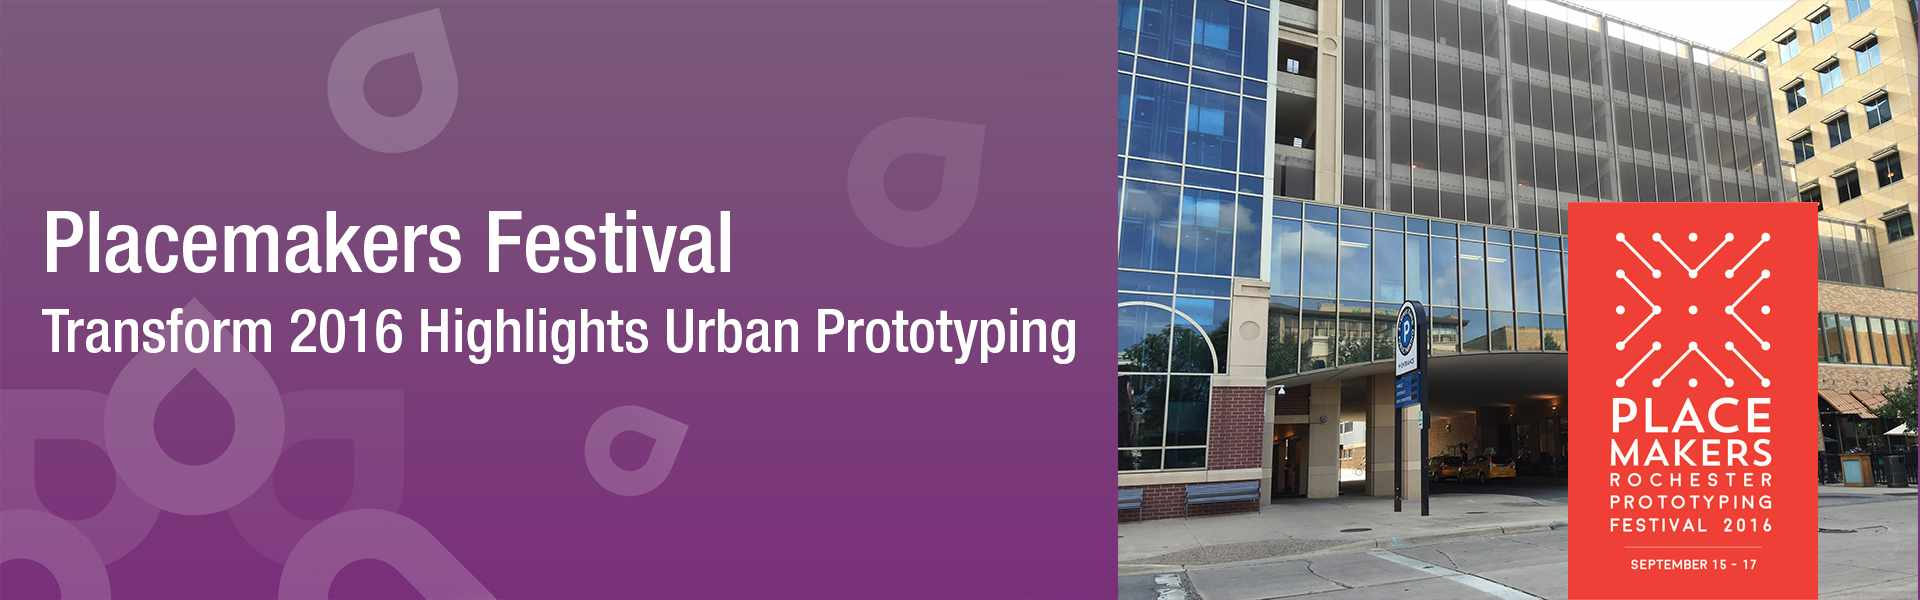 PlaceMakers | A Block Party for the Future of Rochester, MN  Transform 2016 Highlights Urban Prototyping